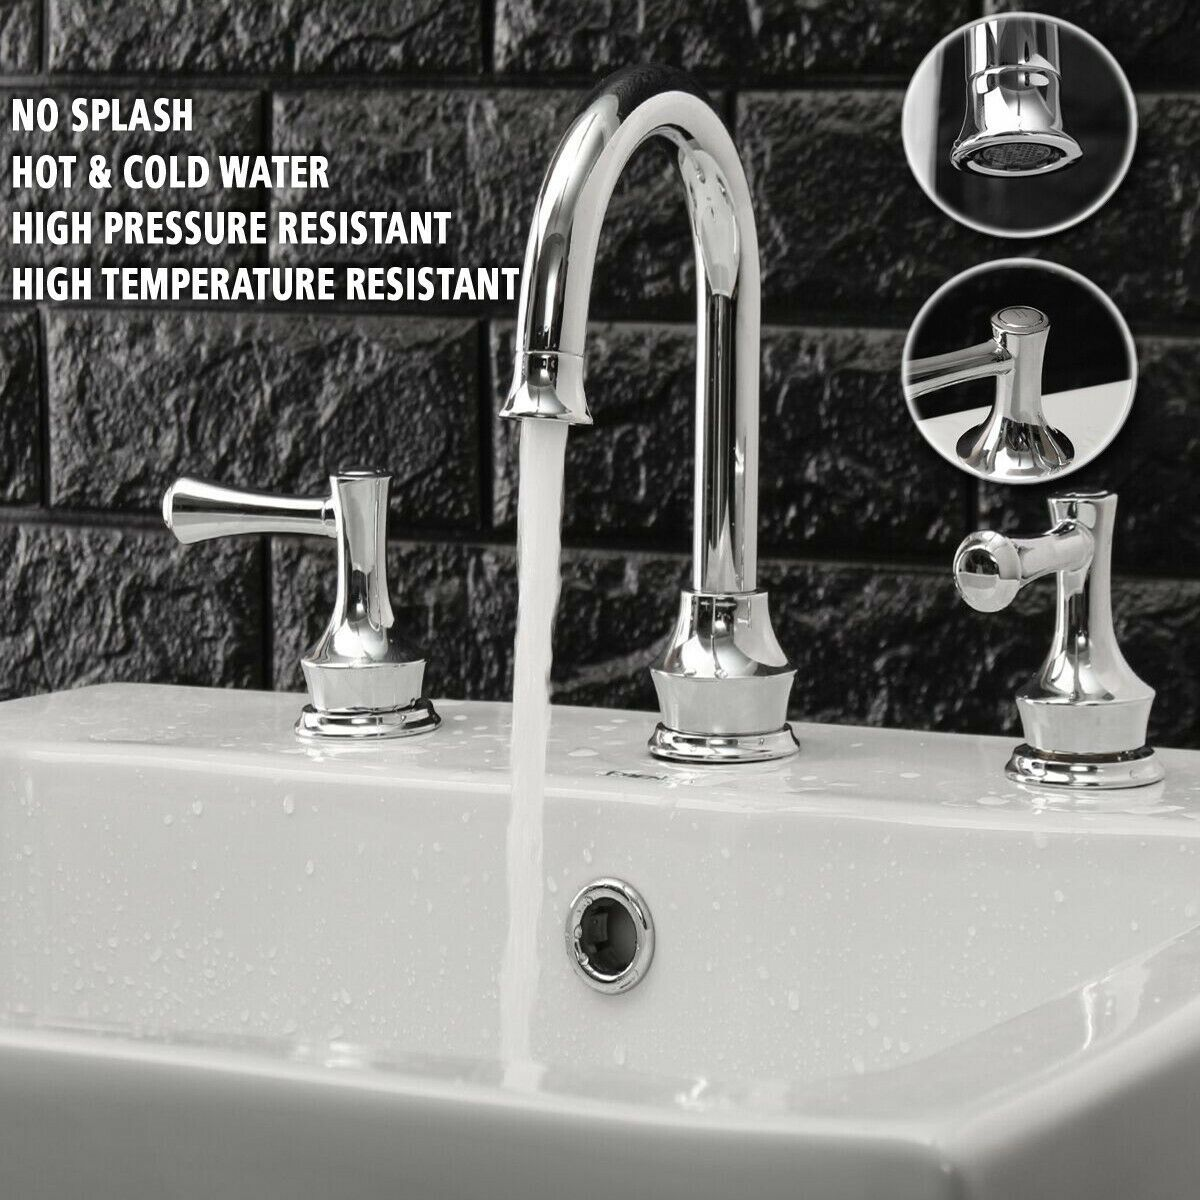 Tapcet 8 Widespread 2 Handles 3 Holes Bathroom Sink Faucet Chrome Brass Bathroom F Bathroom Sink Faucets Chrome Bathroom Sink Faucets Kohler Bathroom Faucet